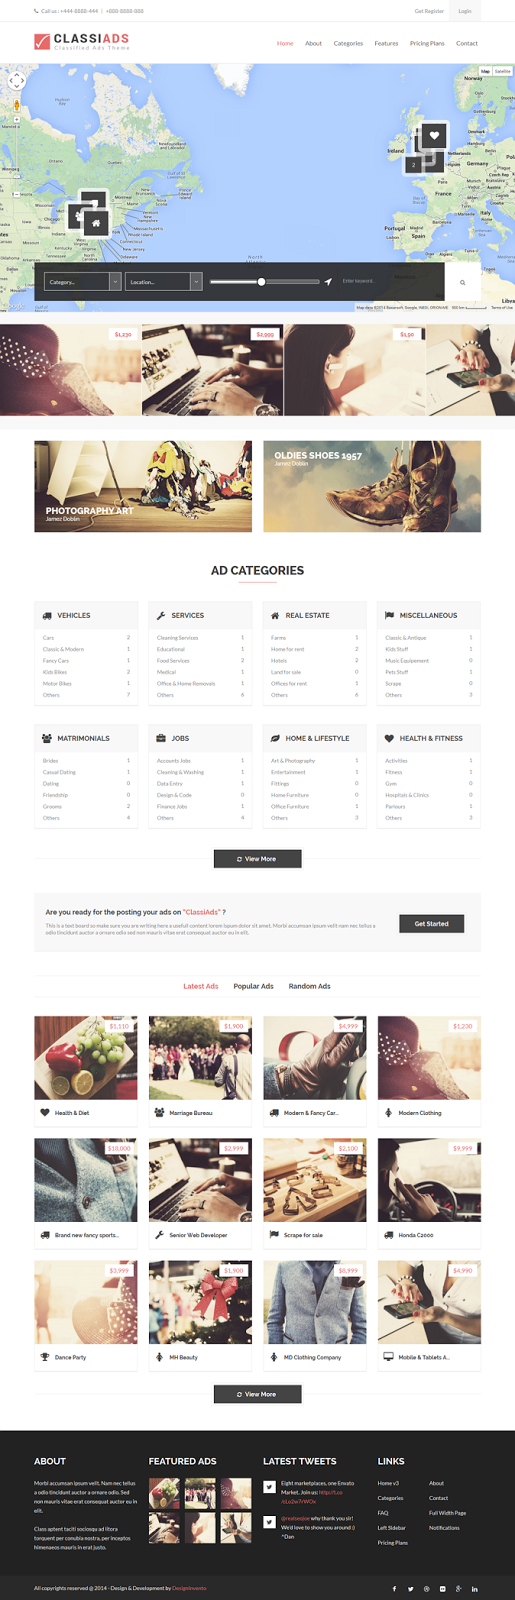 Classified Ads Website Template